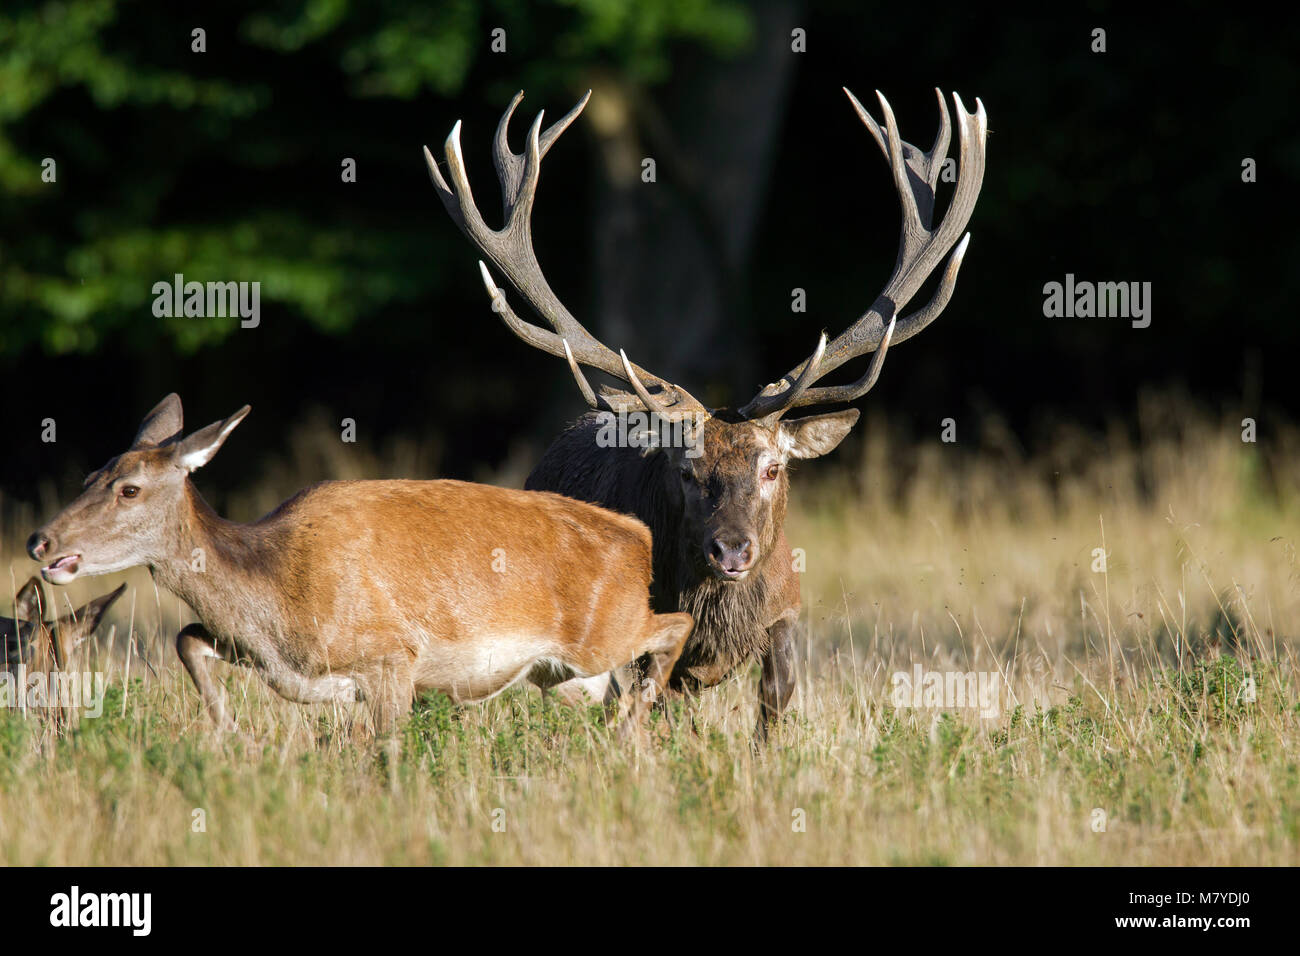 Red deer (Cervus elaphus) stag chasing hind / female in heat during the rutting season in autumn - Stock Image